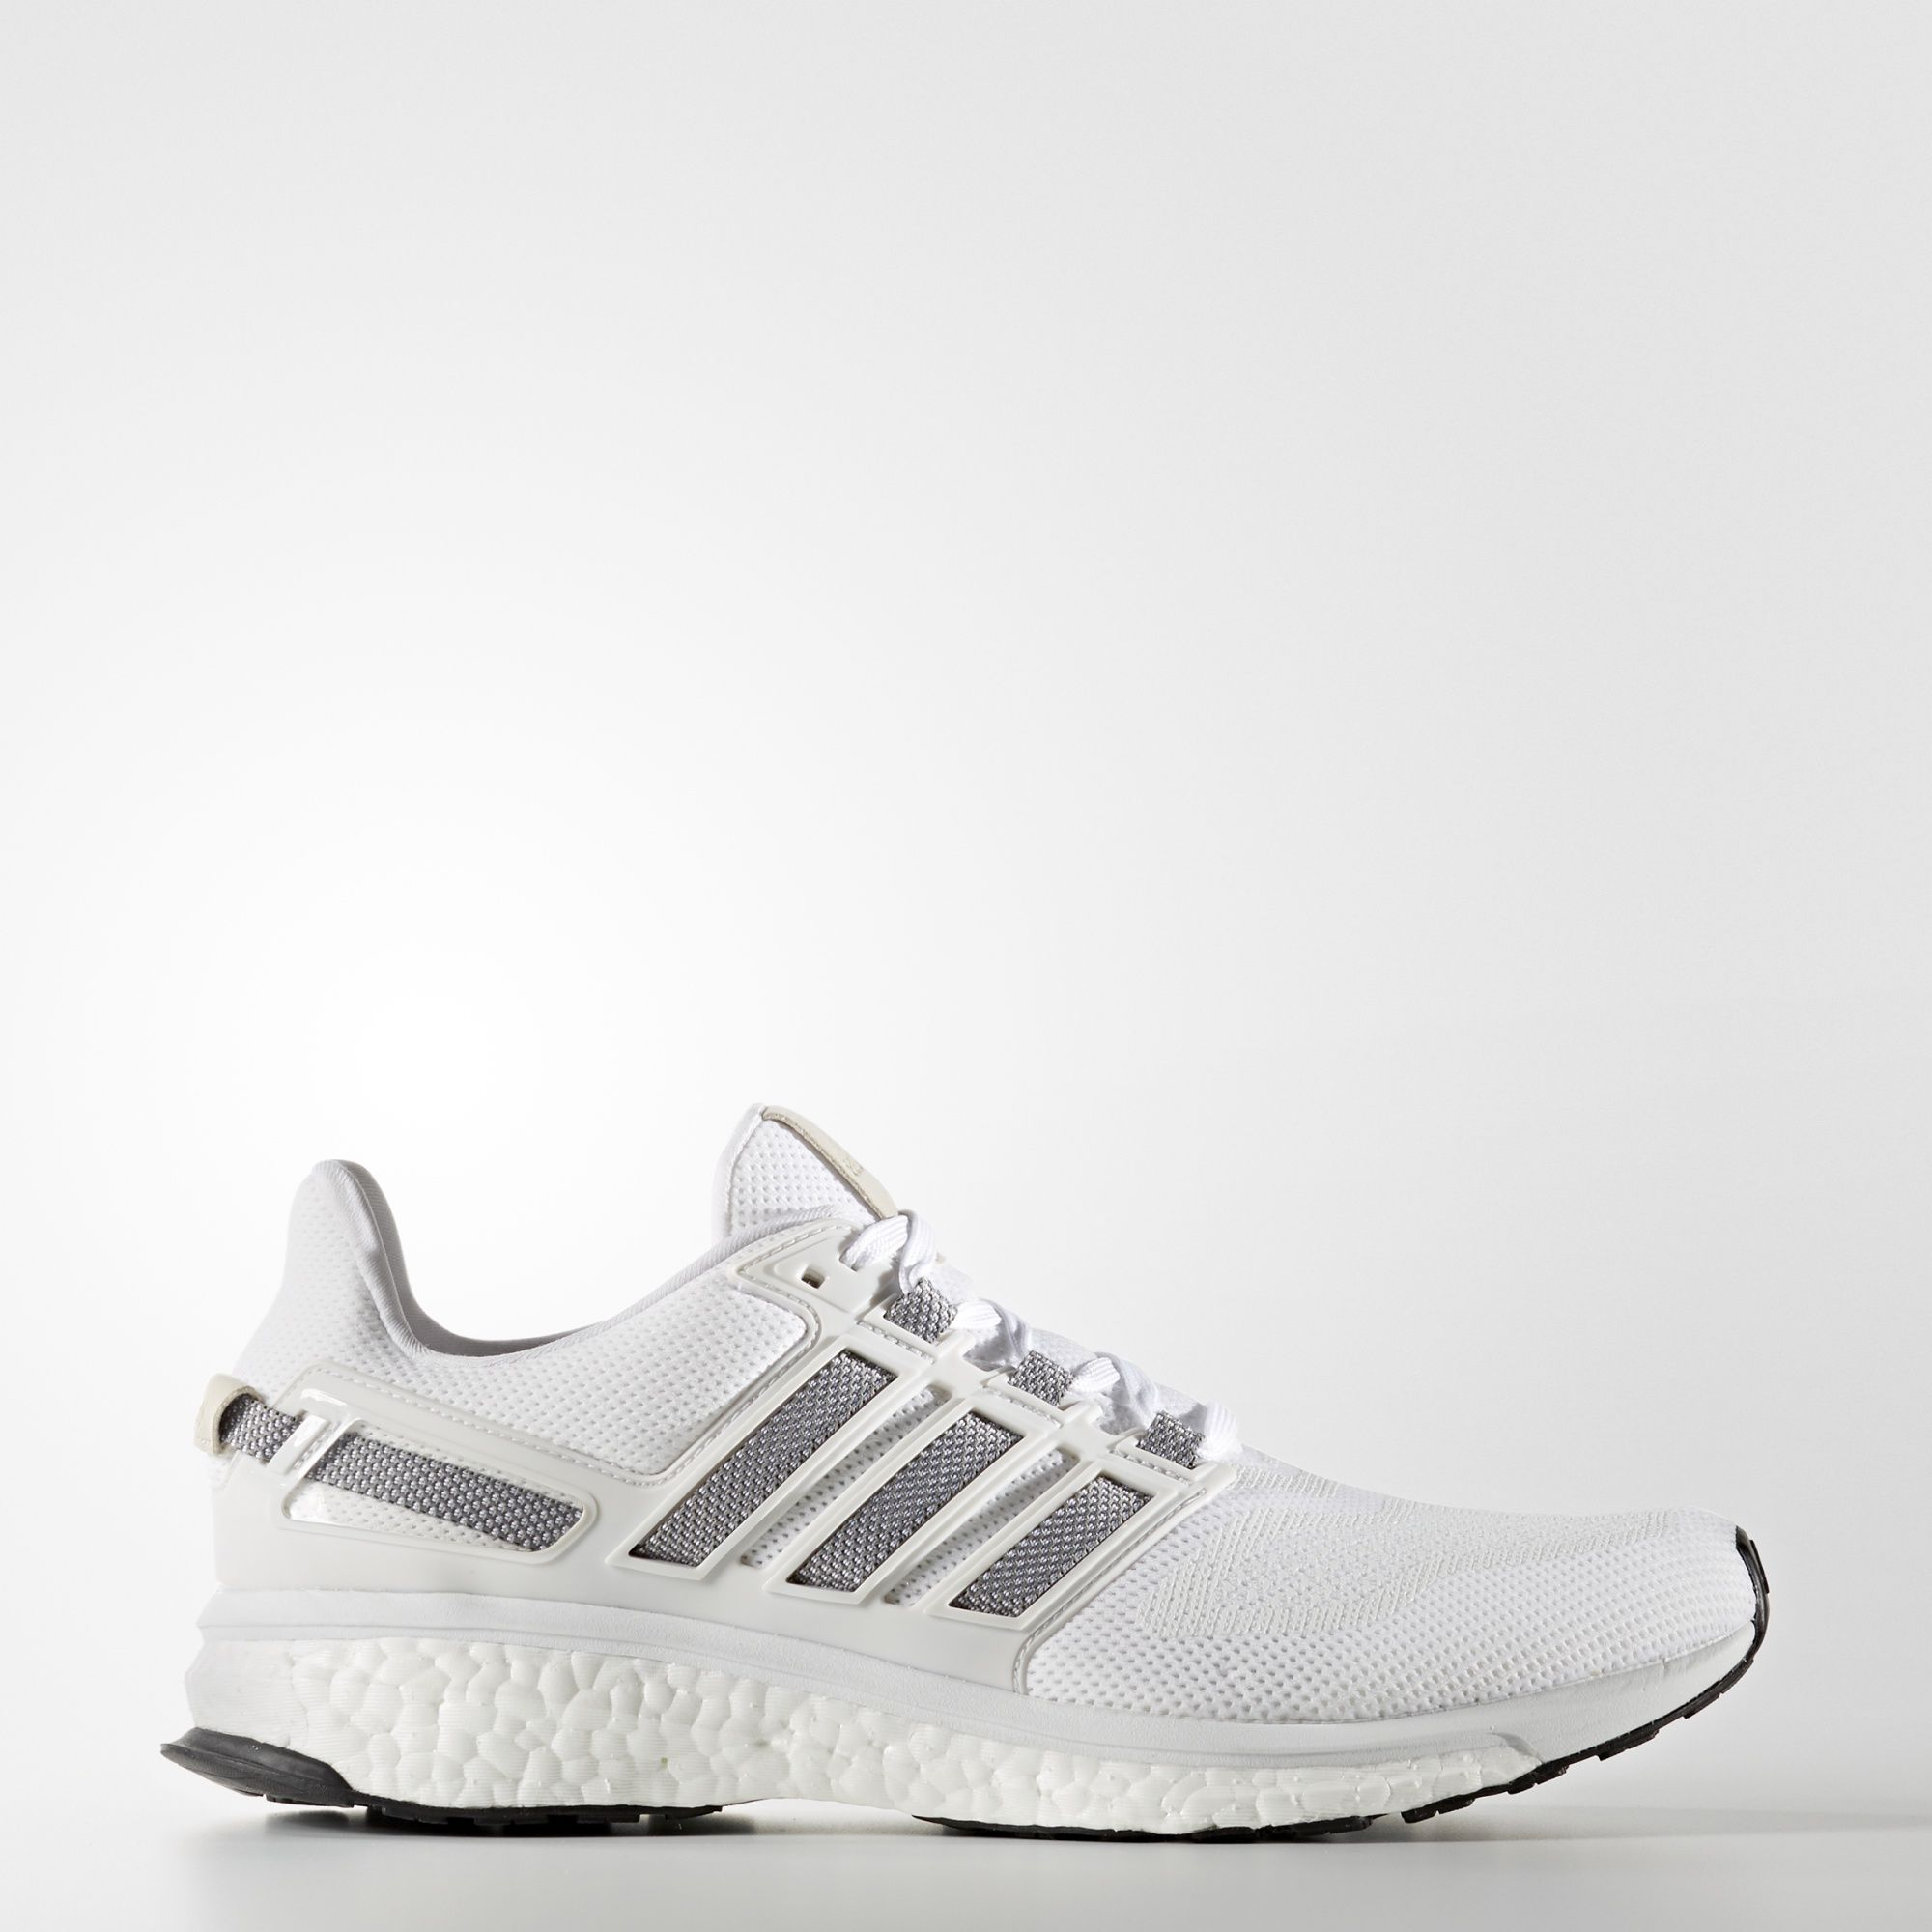 quality design 587f1 b7e0f adidas - Energy Boost 3 Shoes